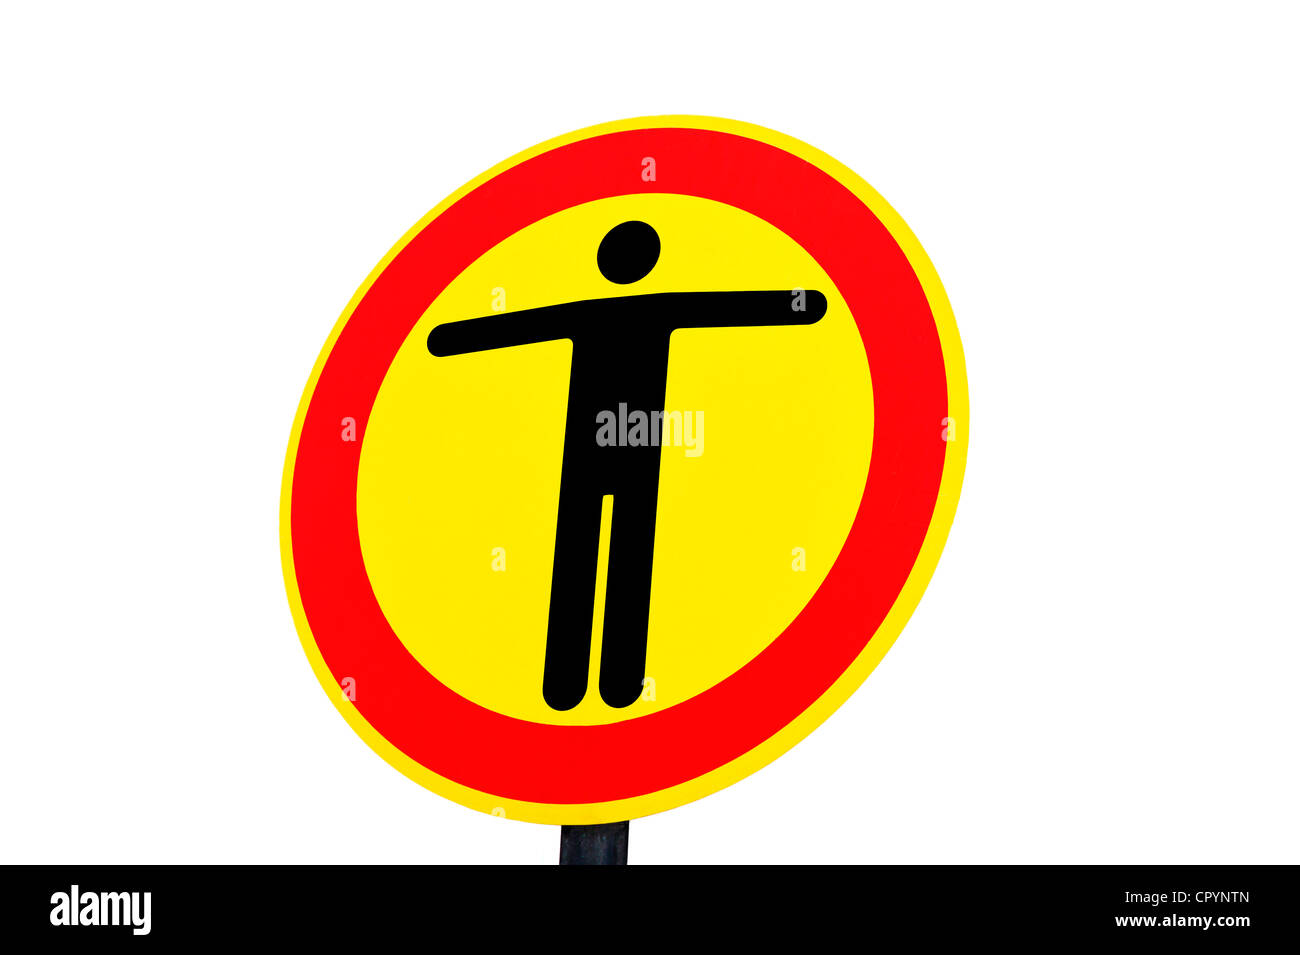 Sign, stop, no passage - Stock Image